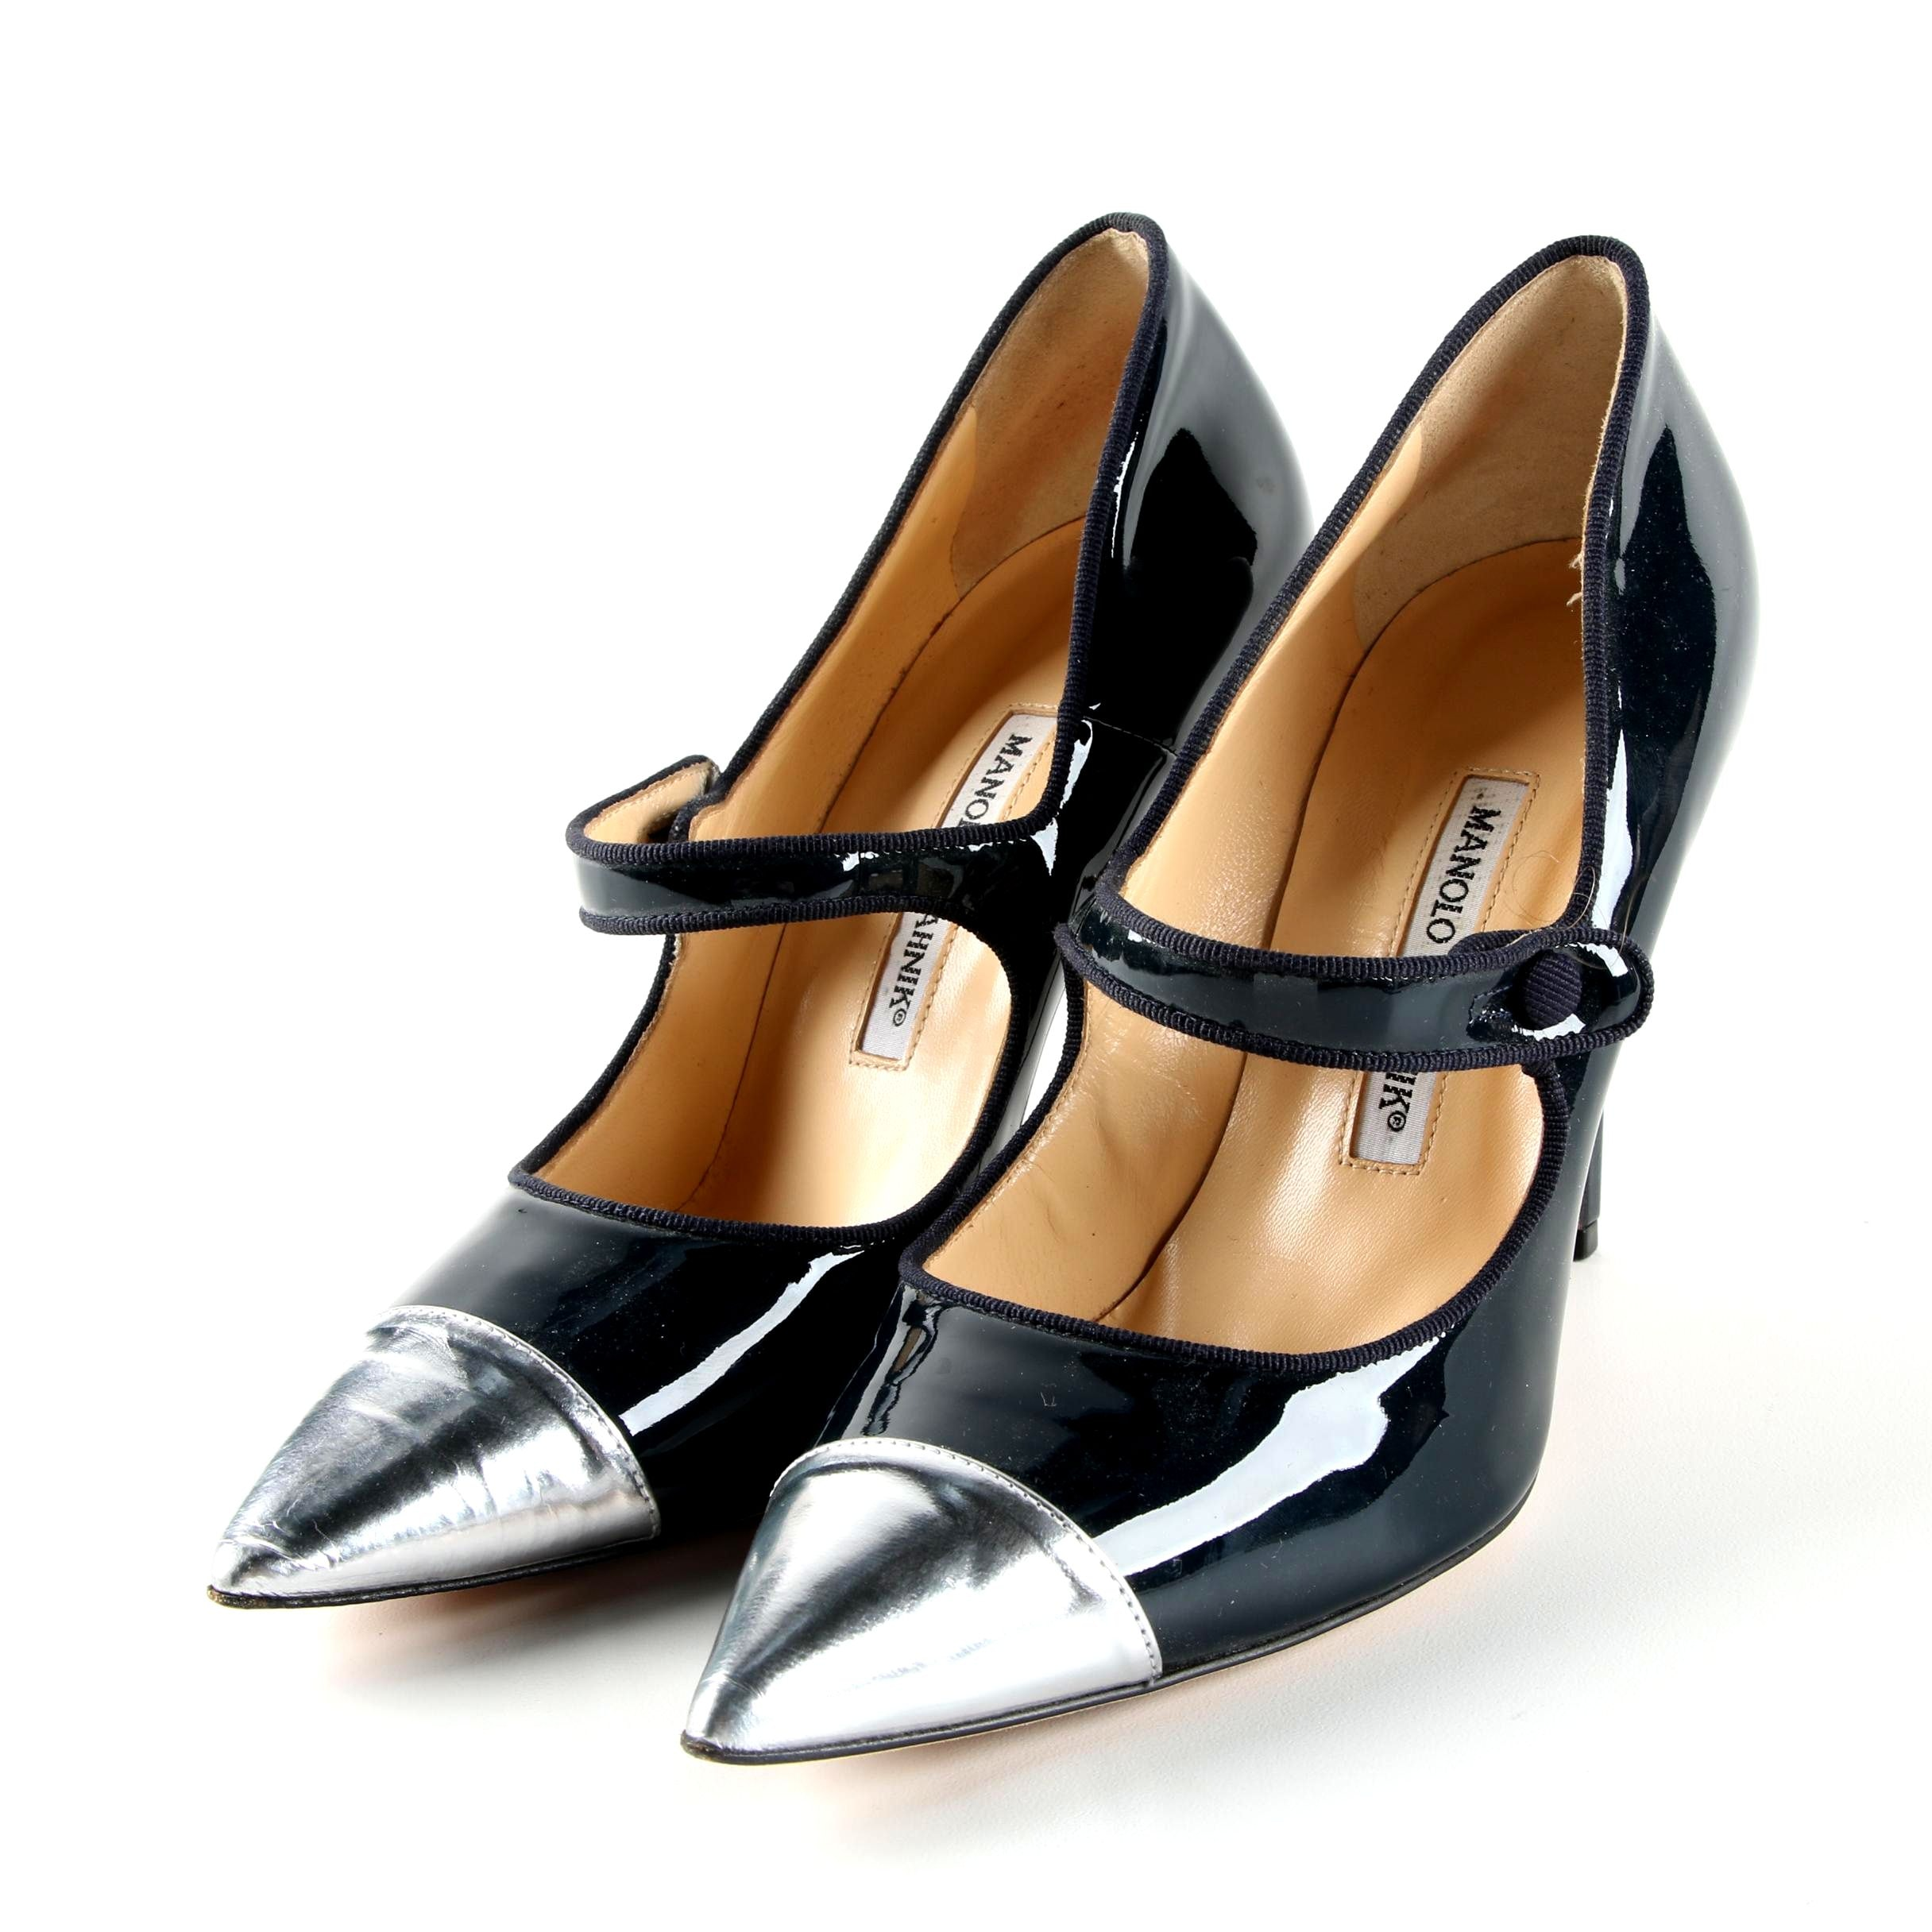 Manolo Blahnik Navy and Silver Metallic Patent Leather Pumps